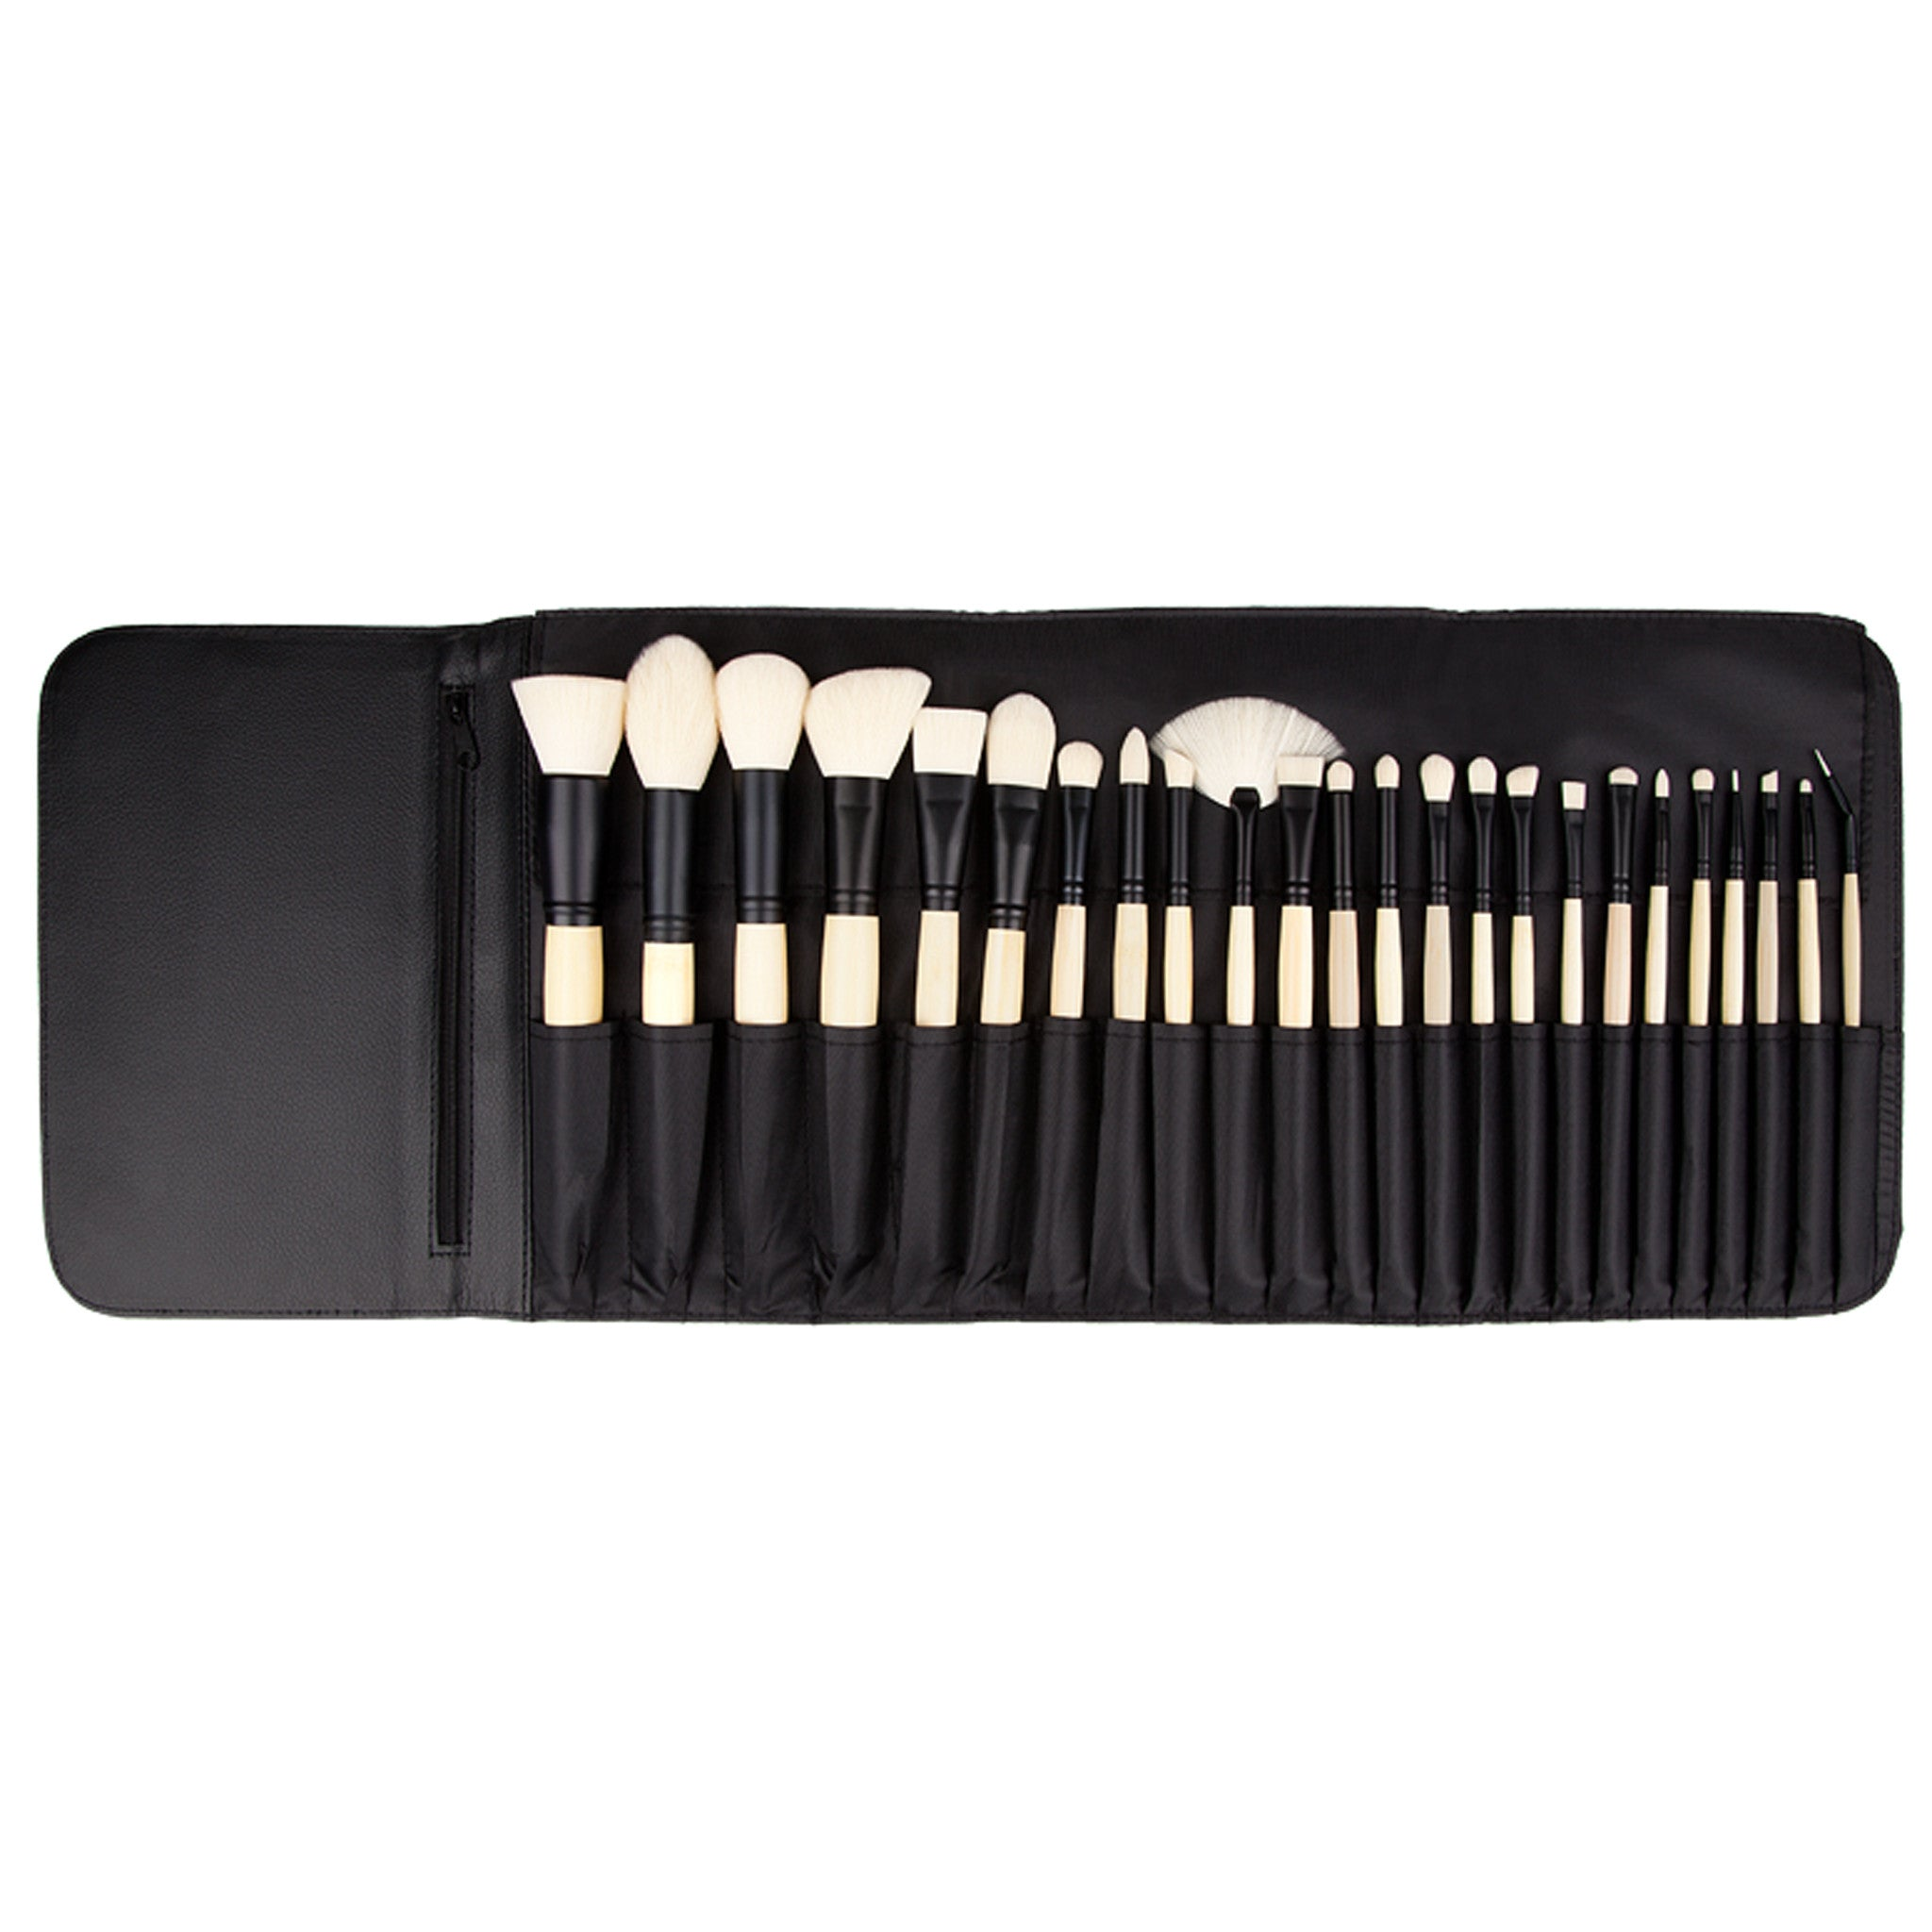 Makeup Brushes -Elite Makeup Brush Set By Coastal Scents